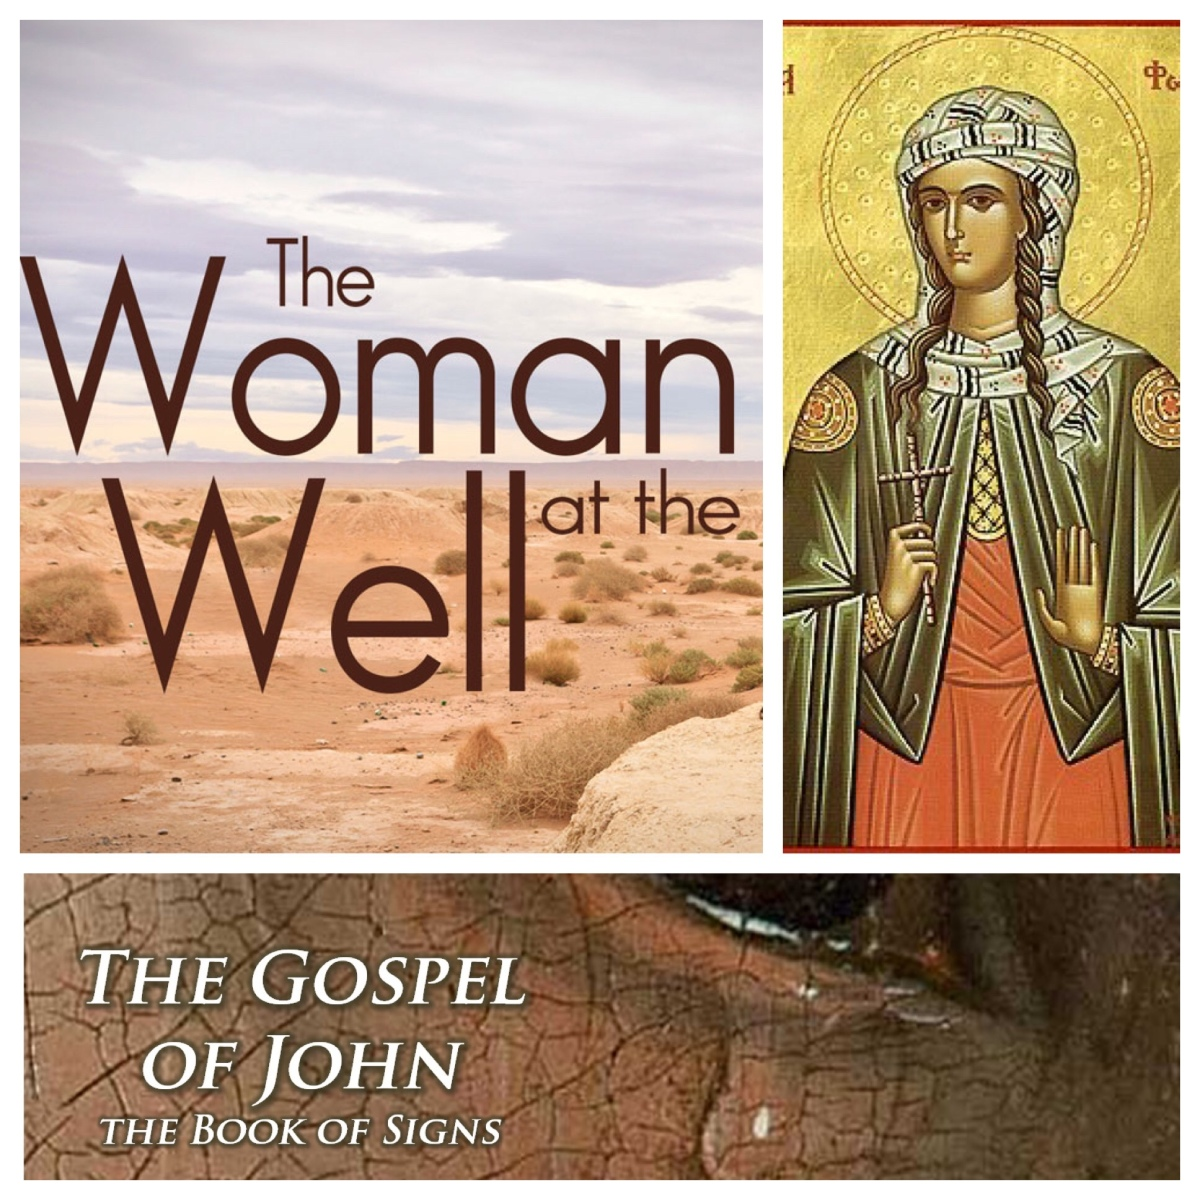 From the woman at the well to a Byazantine saint: John 4, St Photini, and the path to enlightenment